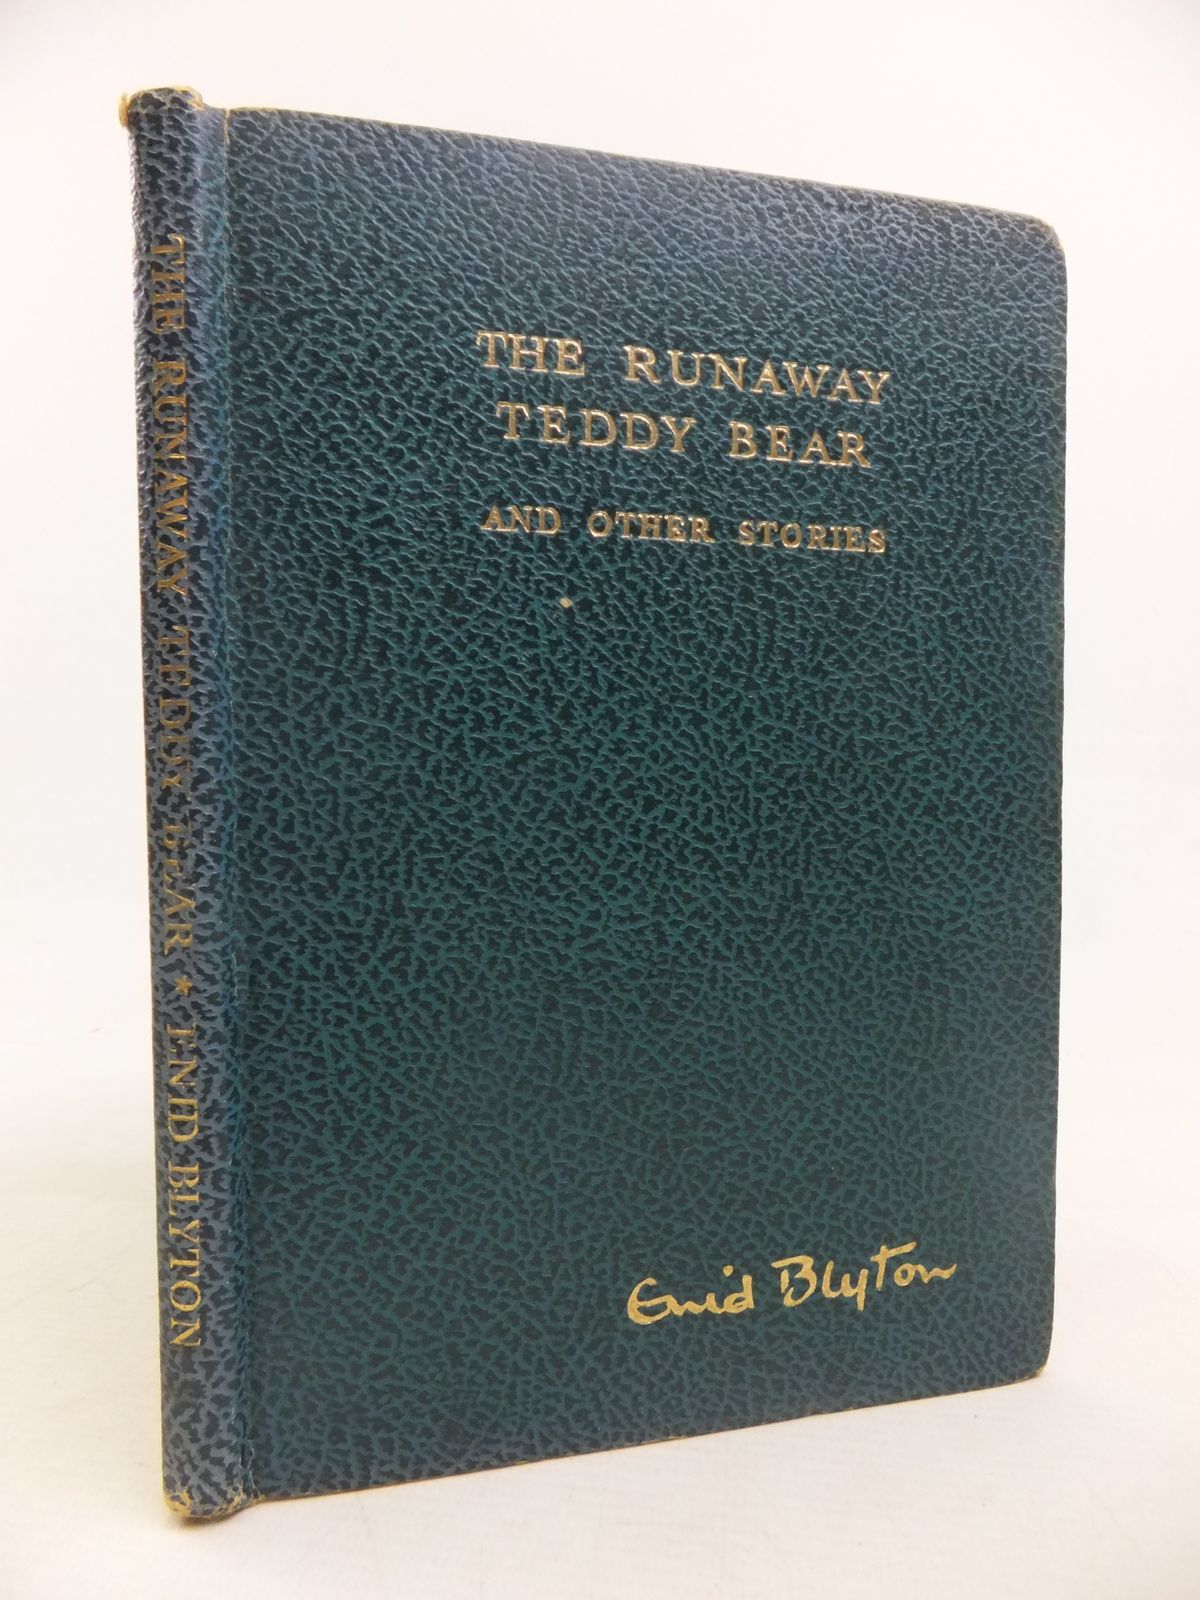 Photo of THE RUNAWAY TEDDY BEAR AND OTHER STORIES